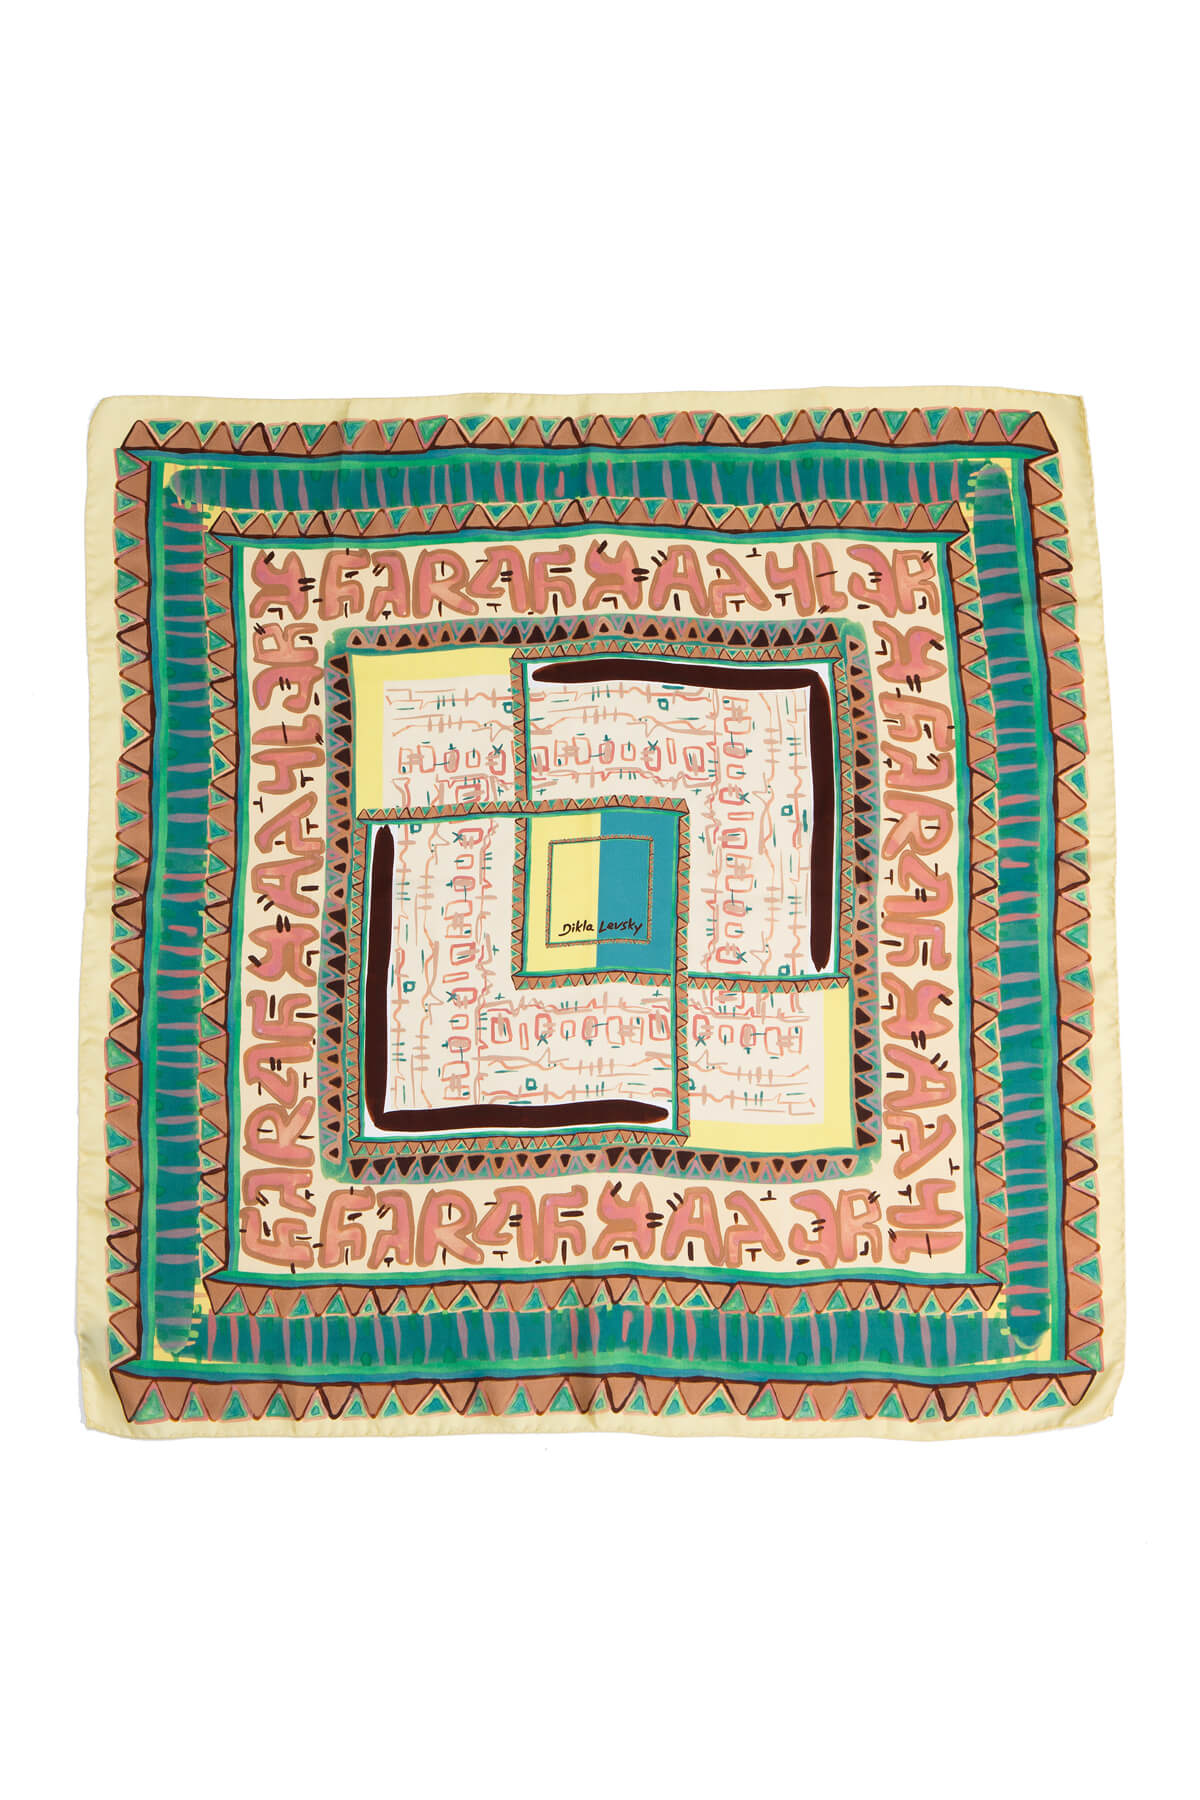 printed square scarf, silk scarf in teal and banana, Re-Phrase scarf by Dikla Levsky